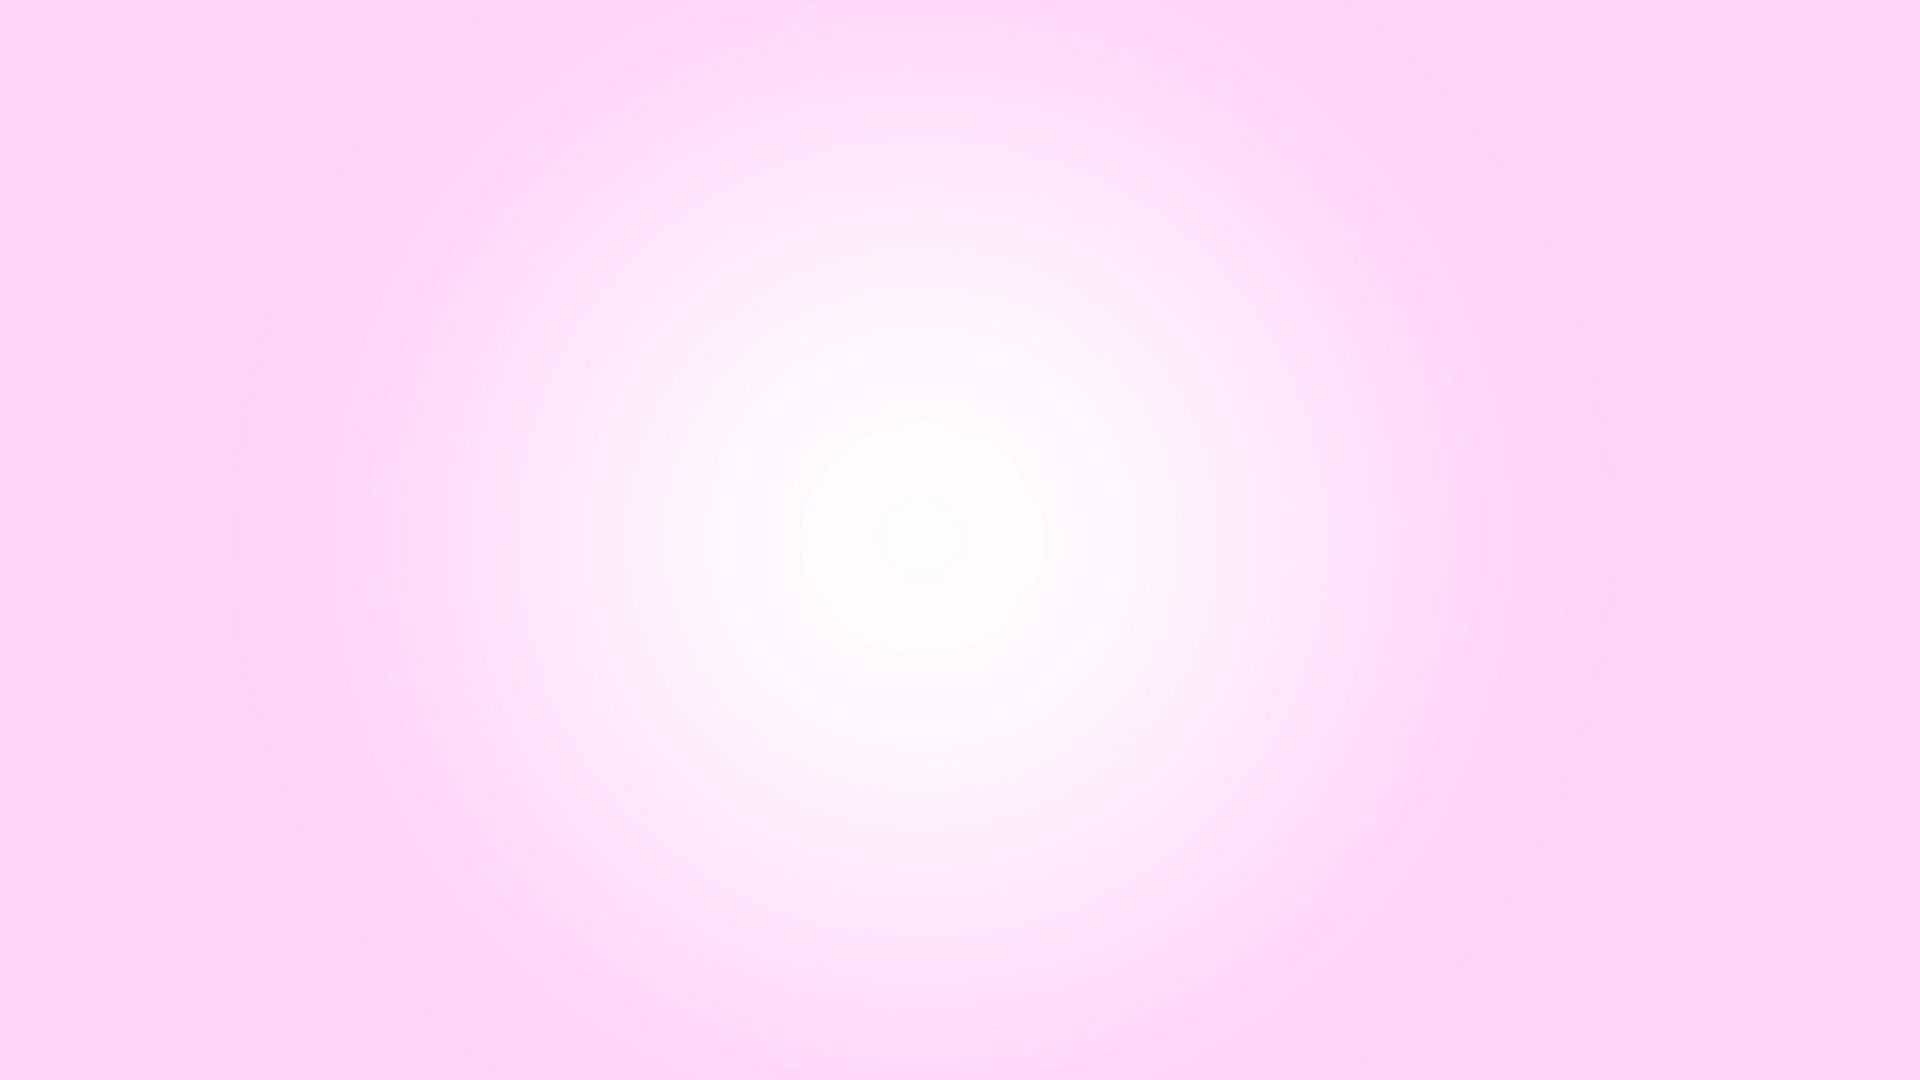 Pink And White Wallpapers Top Free Pink And White Backgrounds Wallpaperaccess